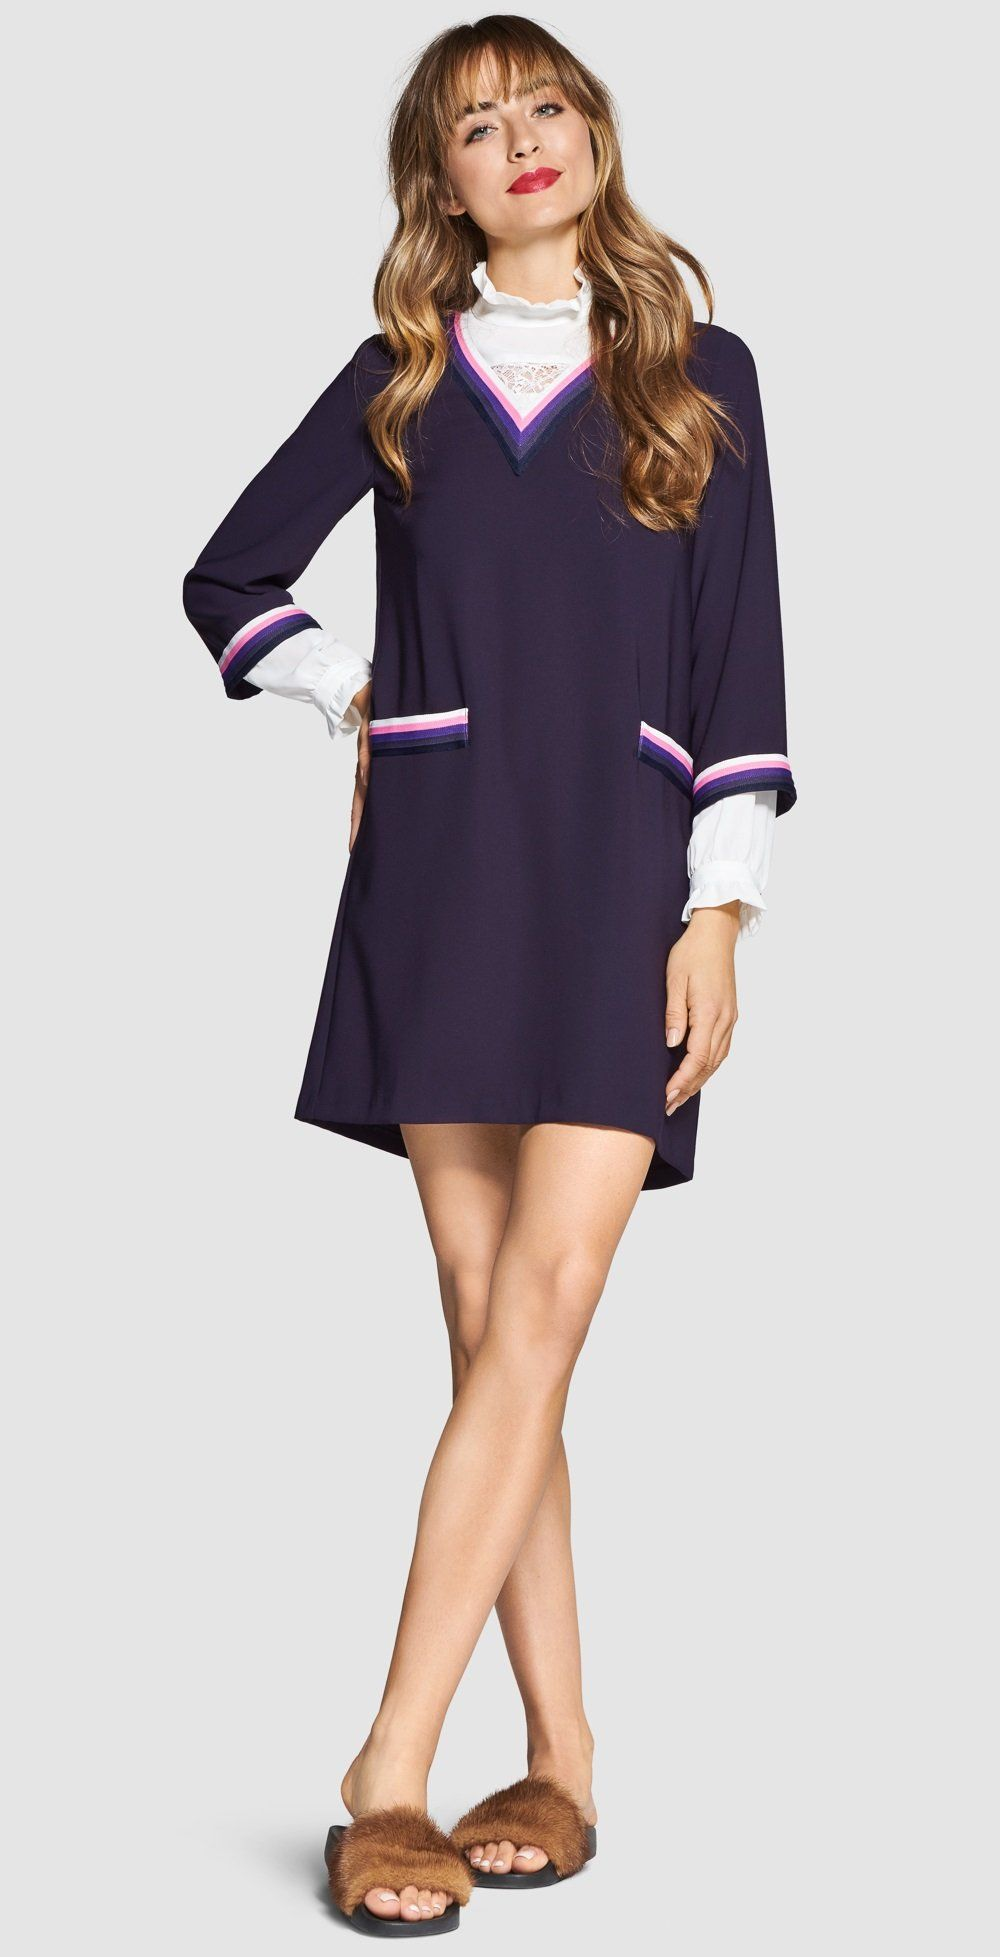 Sporty Chic Rich Royal Looks Shop By Look Rich Royal Colour Blocking Models Styling Tipps